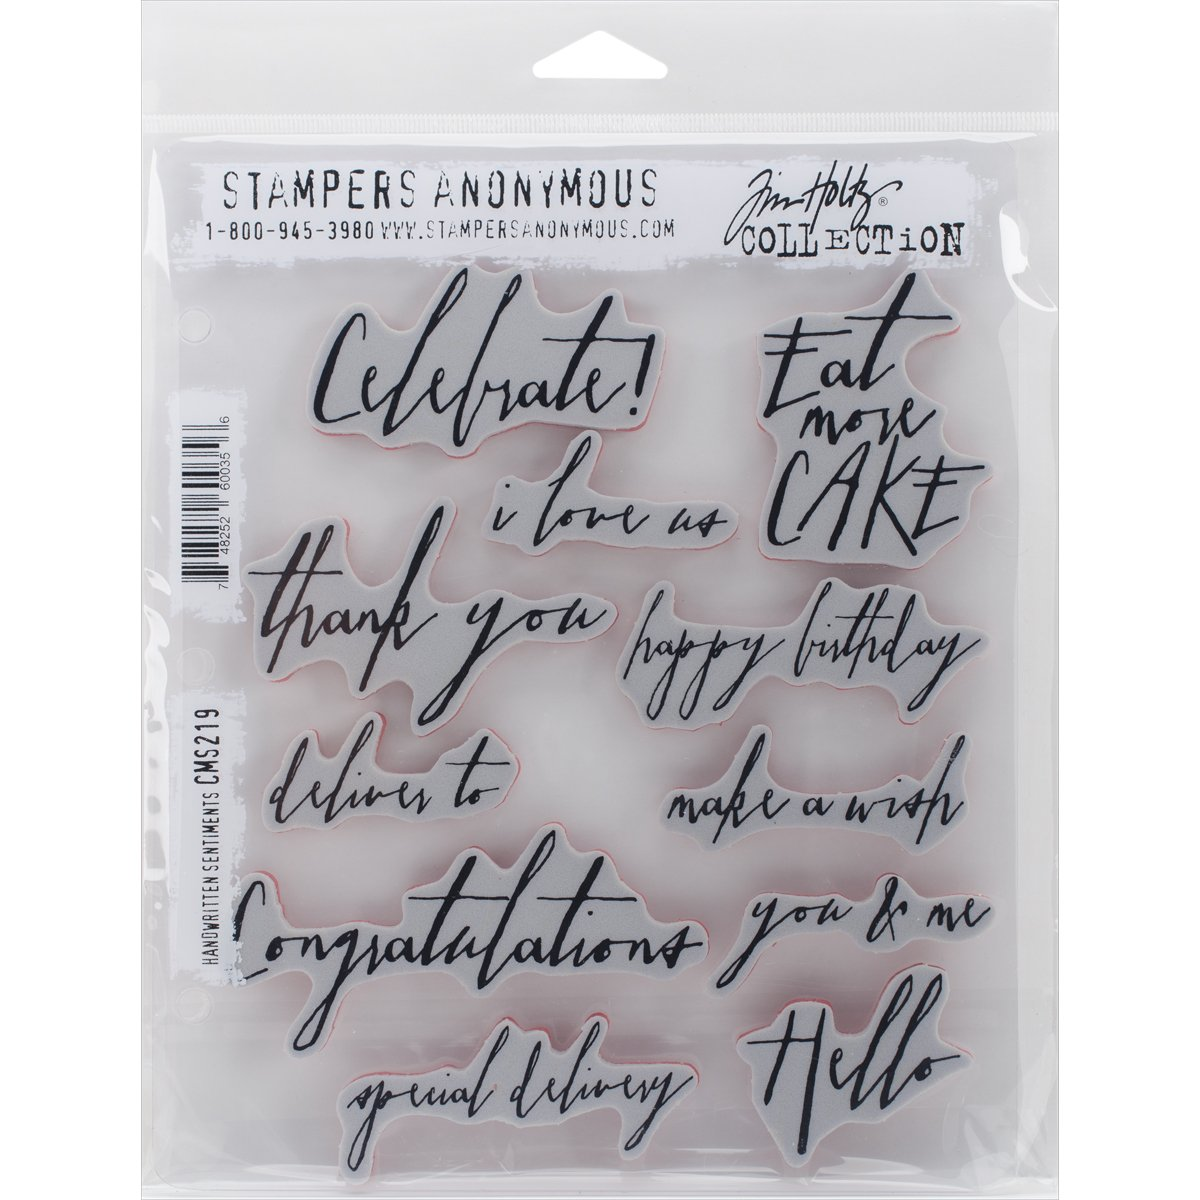 Stampers Anonymous CMS-219 Tim Holtz Cling Rubber Handwritten Sentiments Stamp Set, 7 X 8.5 7 X 8.5 Notions